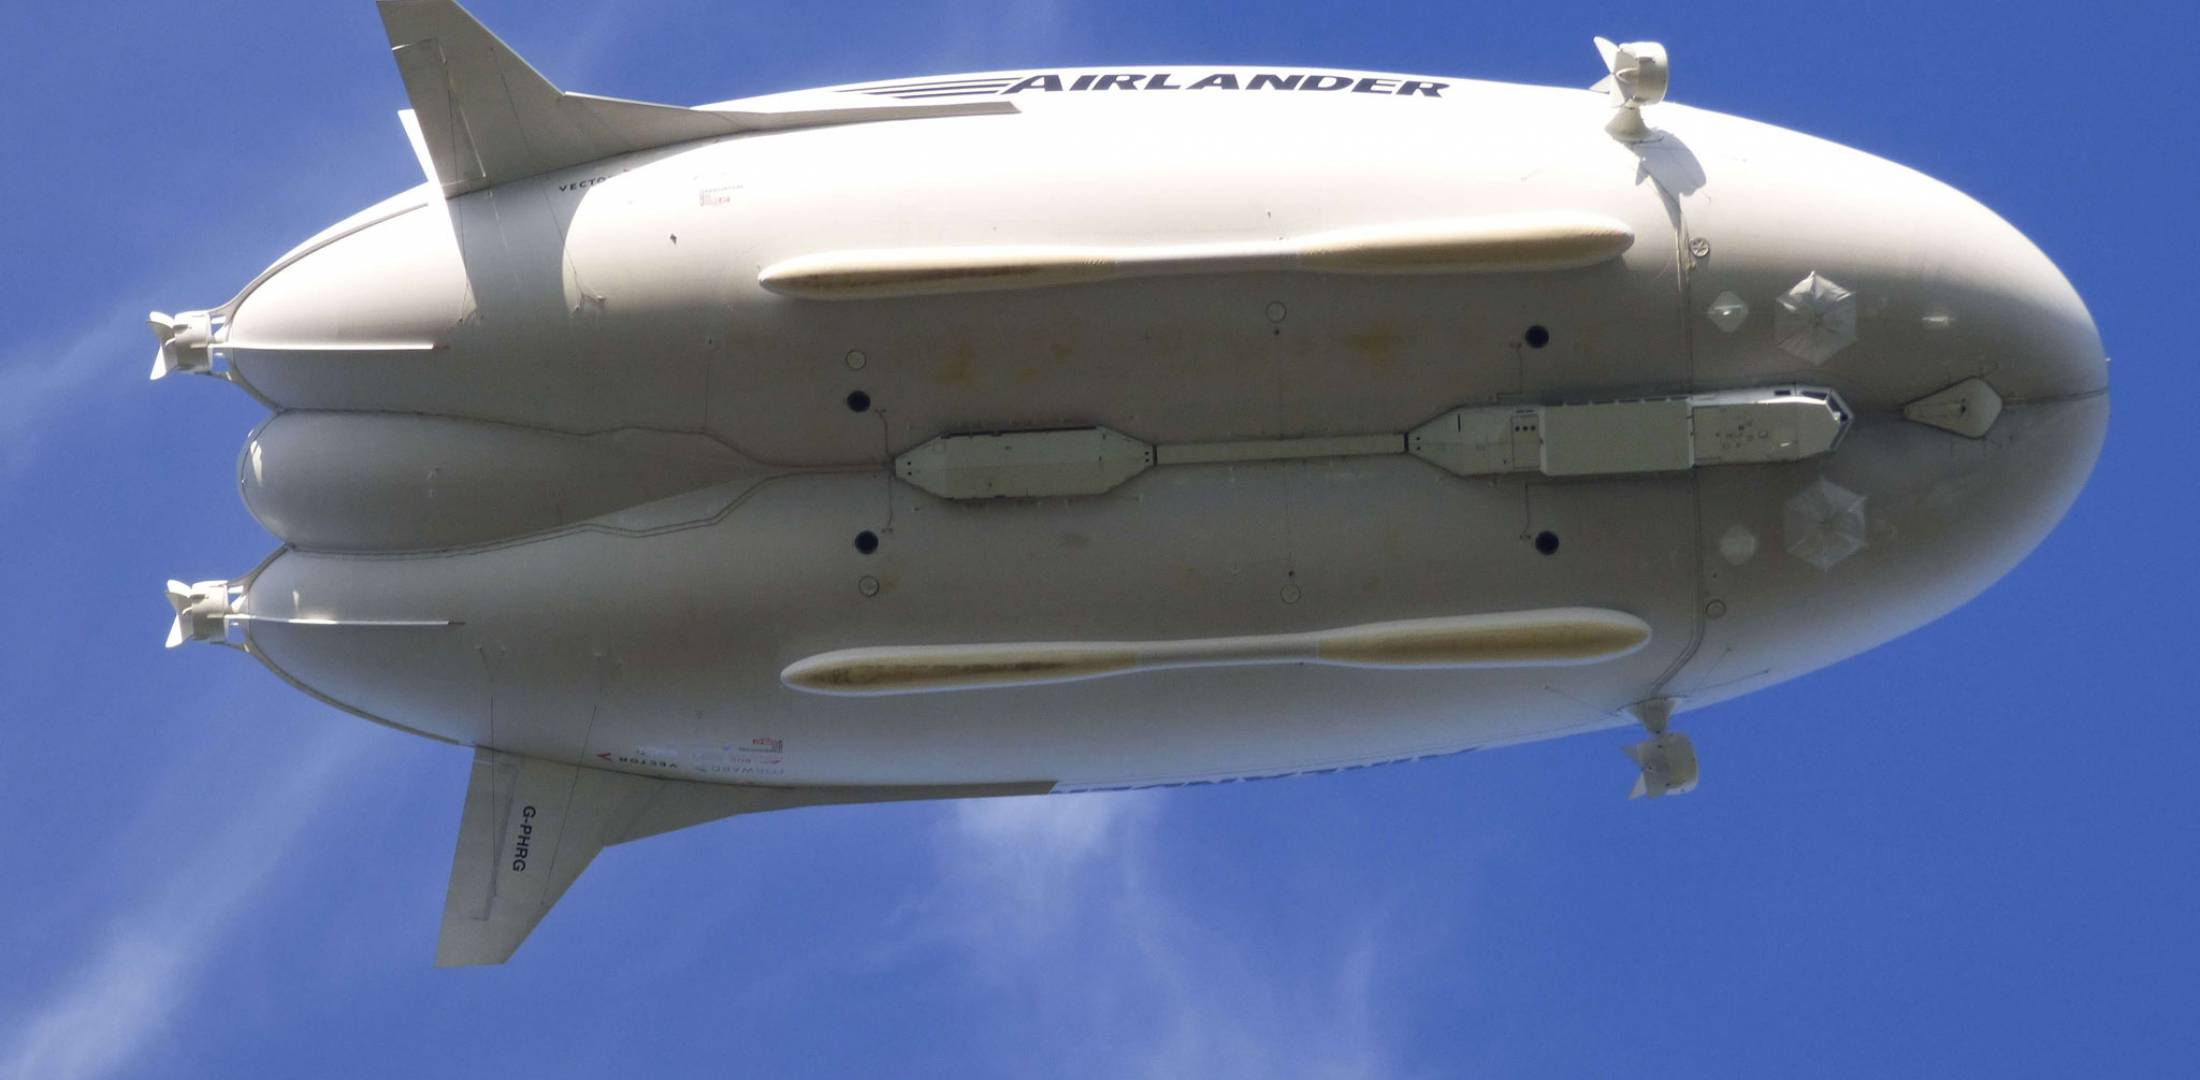 Airlander Hybrid Airship Flies Again | Defense News ...